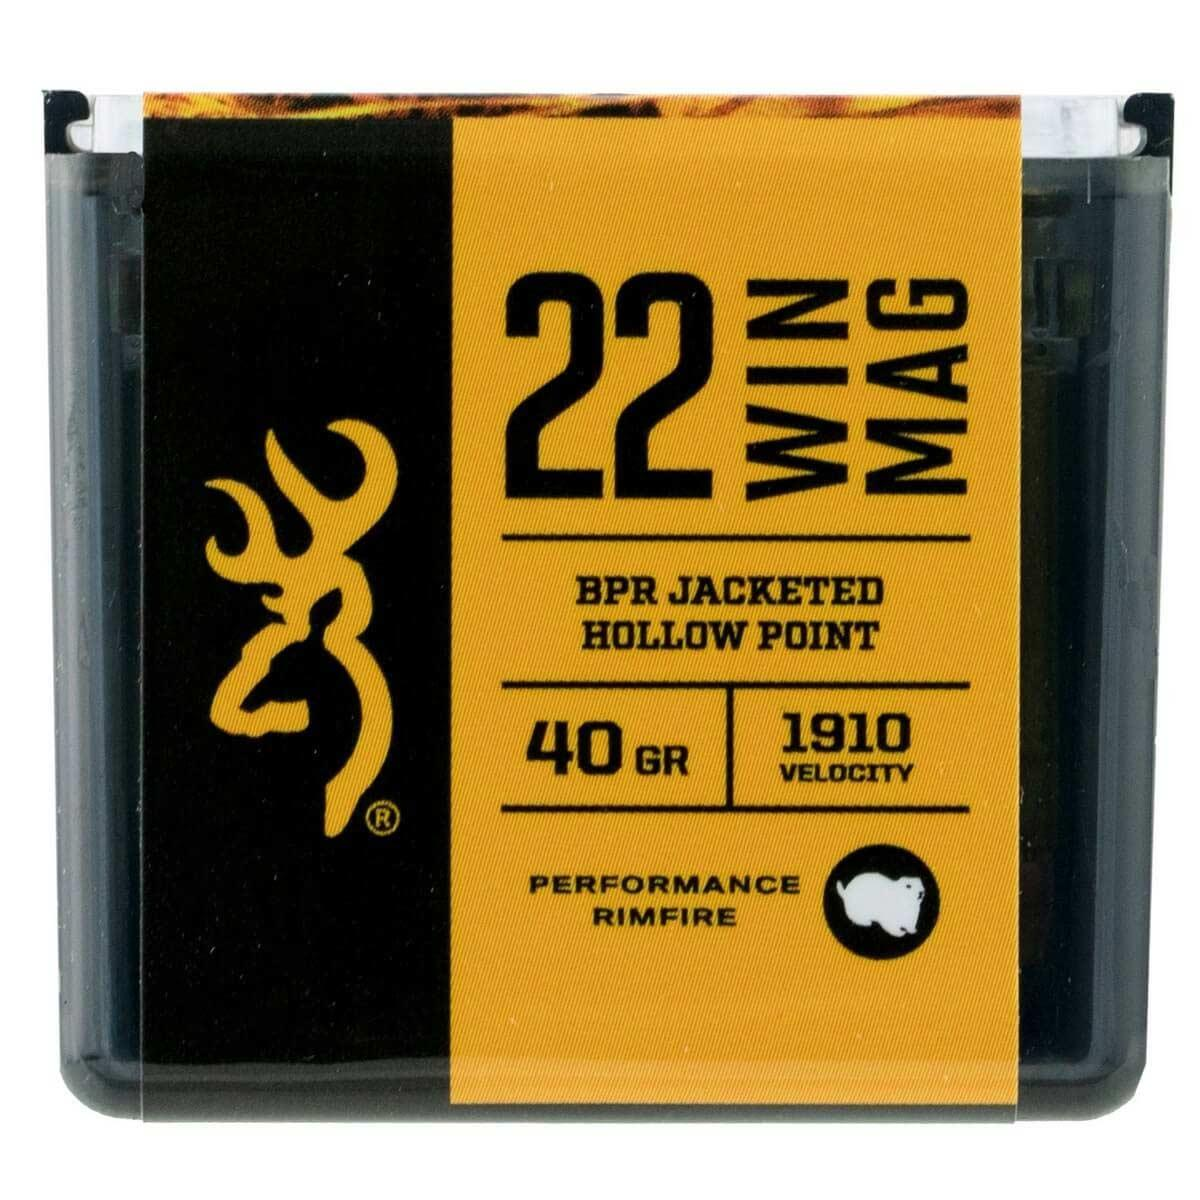 Browning Performance Rimfire Ammunition 22 Win Mag 40 Grain 1910FPS Jacketed Hollow Points, 50 Rounds_1.jpg